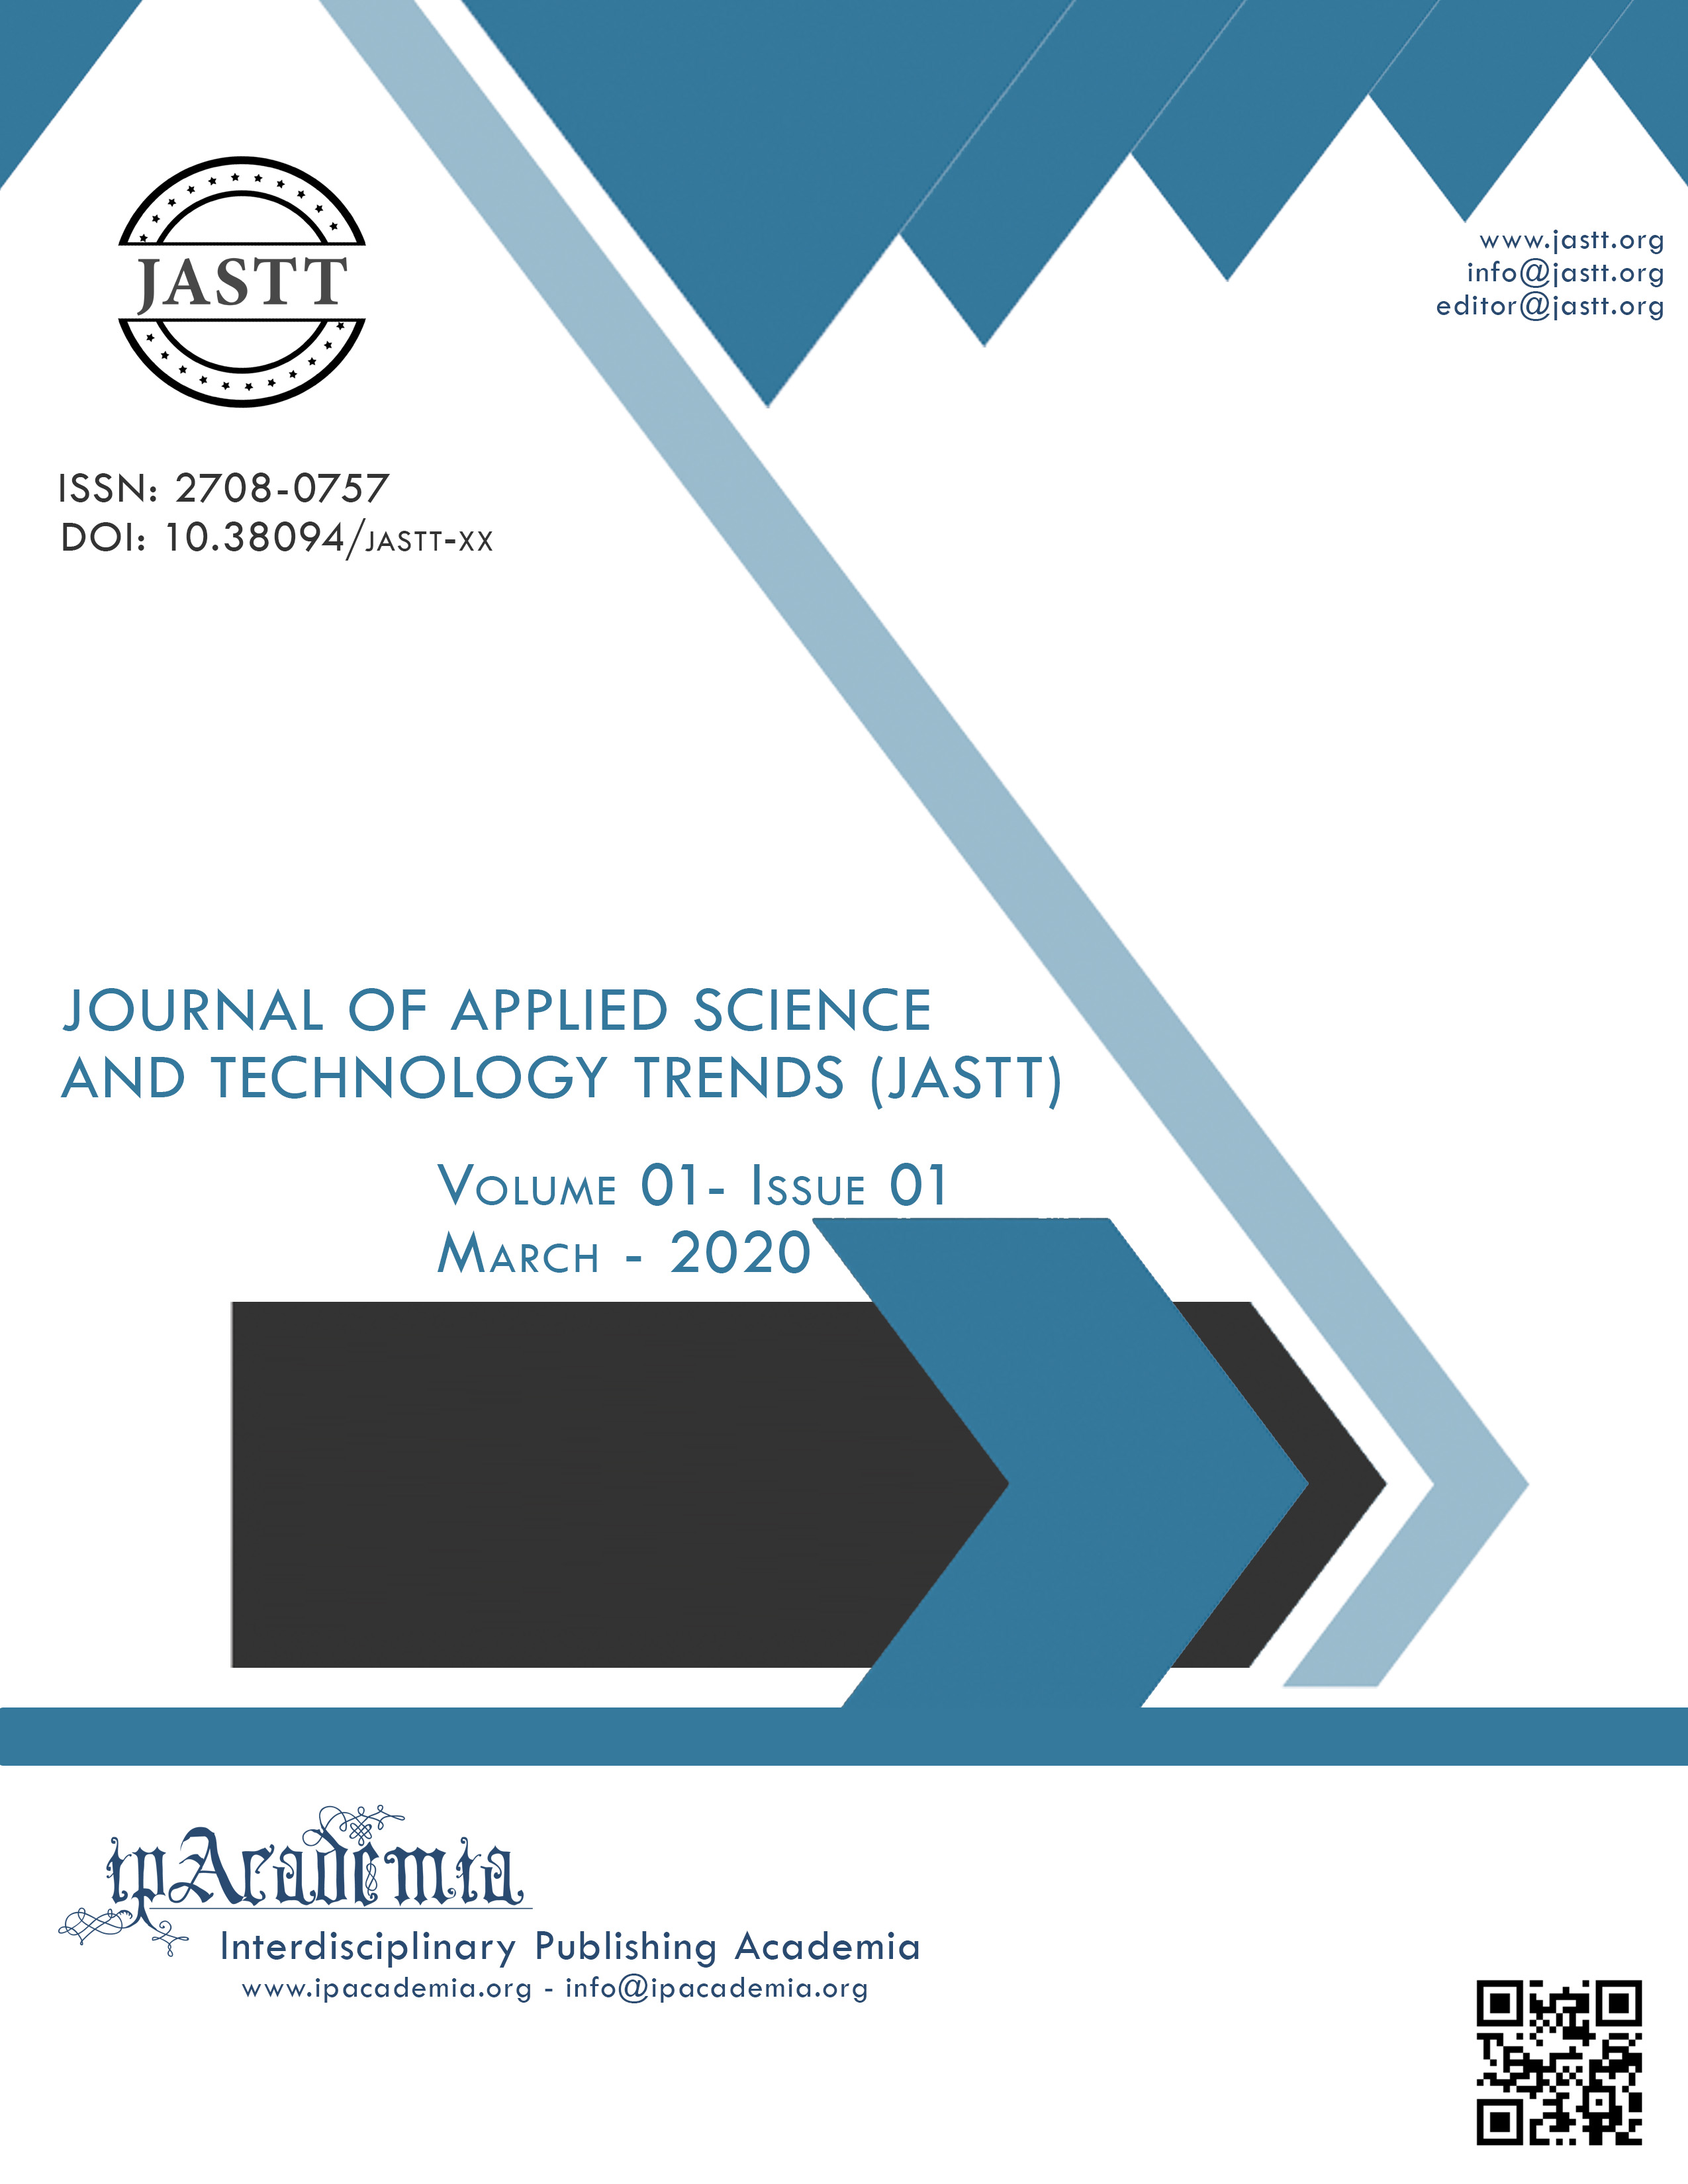 Journal of Applied Science and Technology Trends